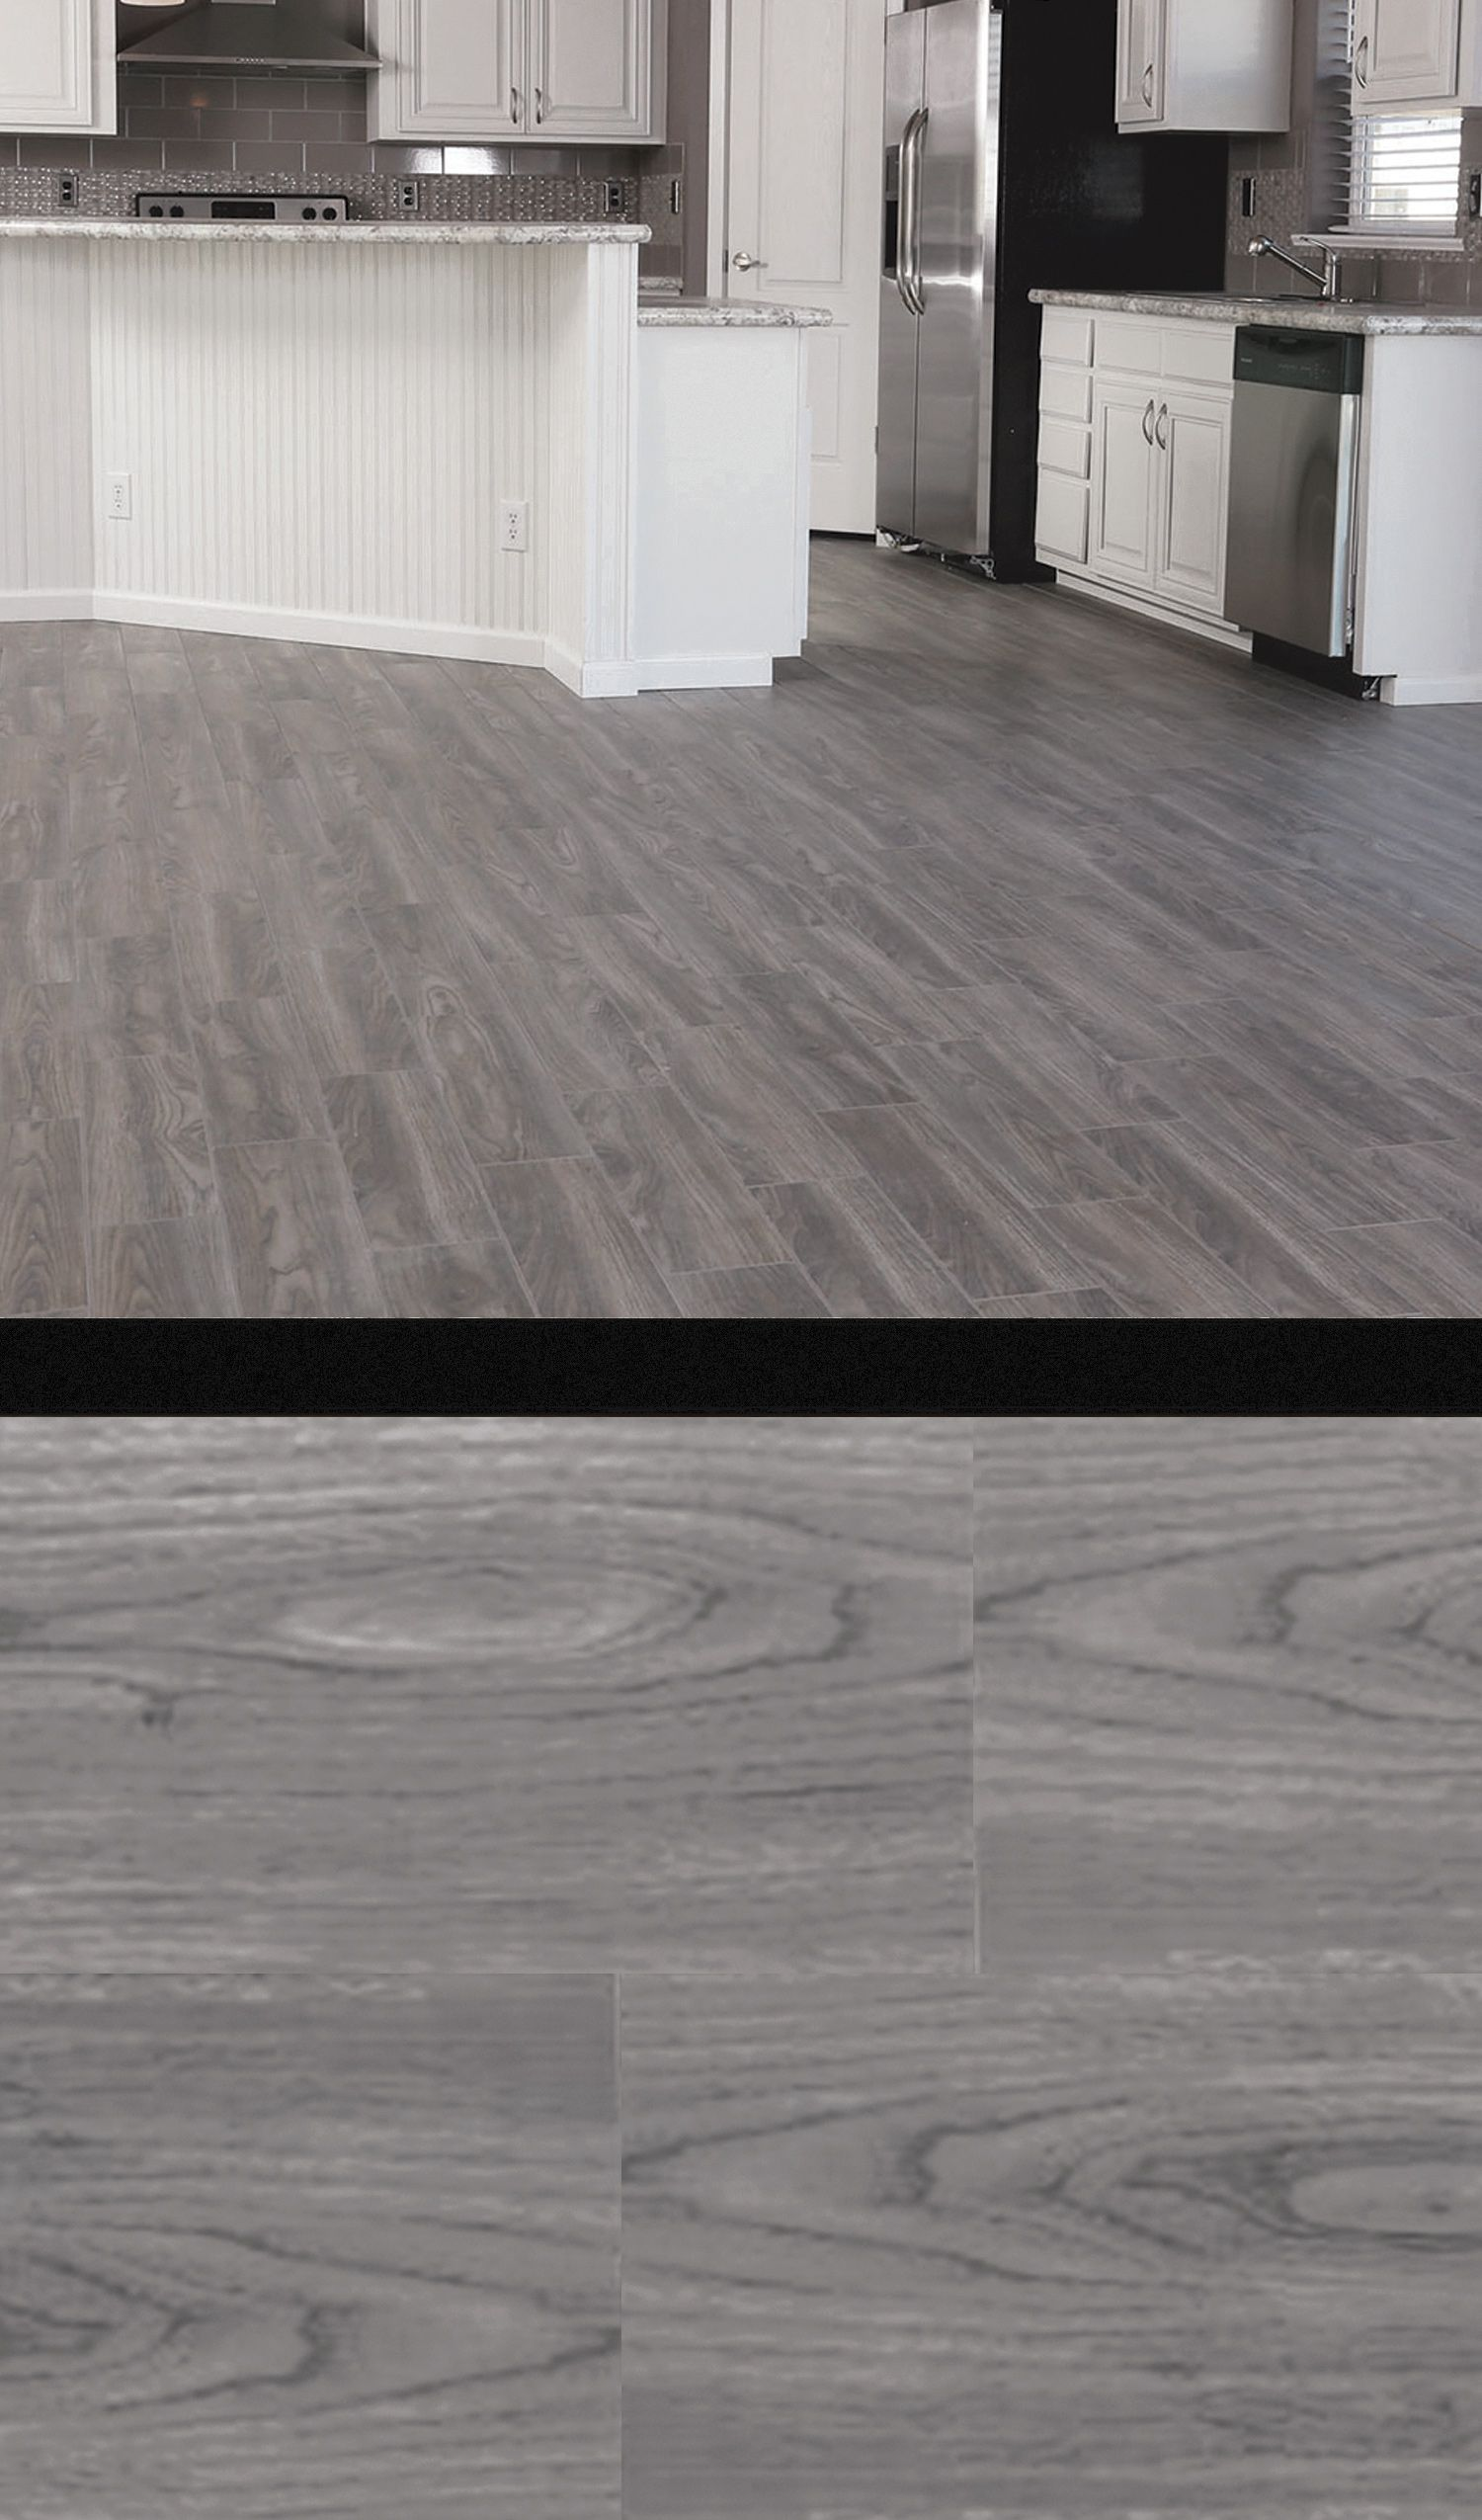 Whether youre starting a project or just adding some finishing whether youre starting a project or just adding some finishing touches snapstone interlocking porcelain tile has you covered dailygadgetfo Image collections